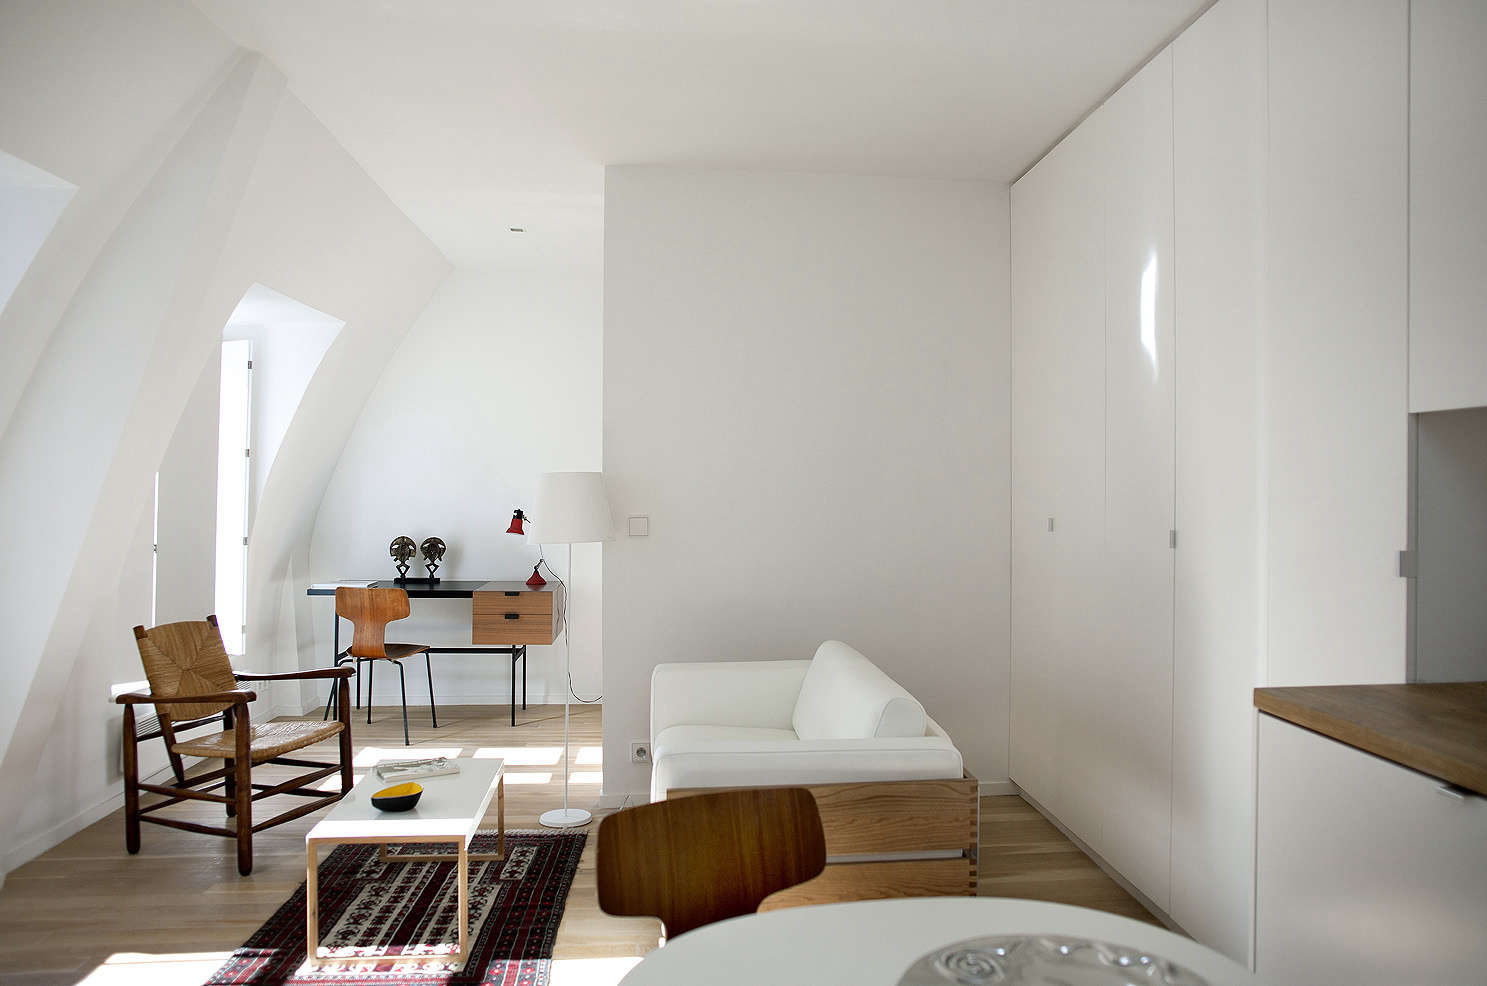 The Perfect Two-Room Paris Pied-à-Terre, Ikea Kitchen Included - The ...